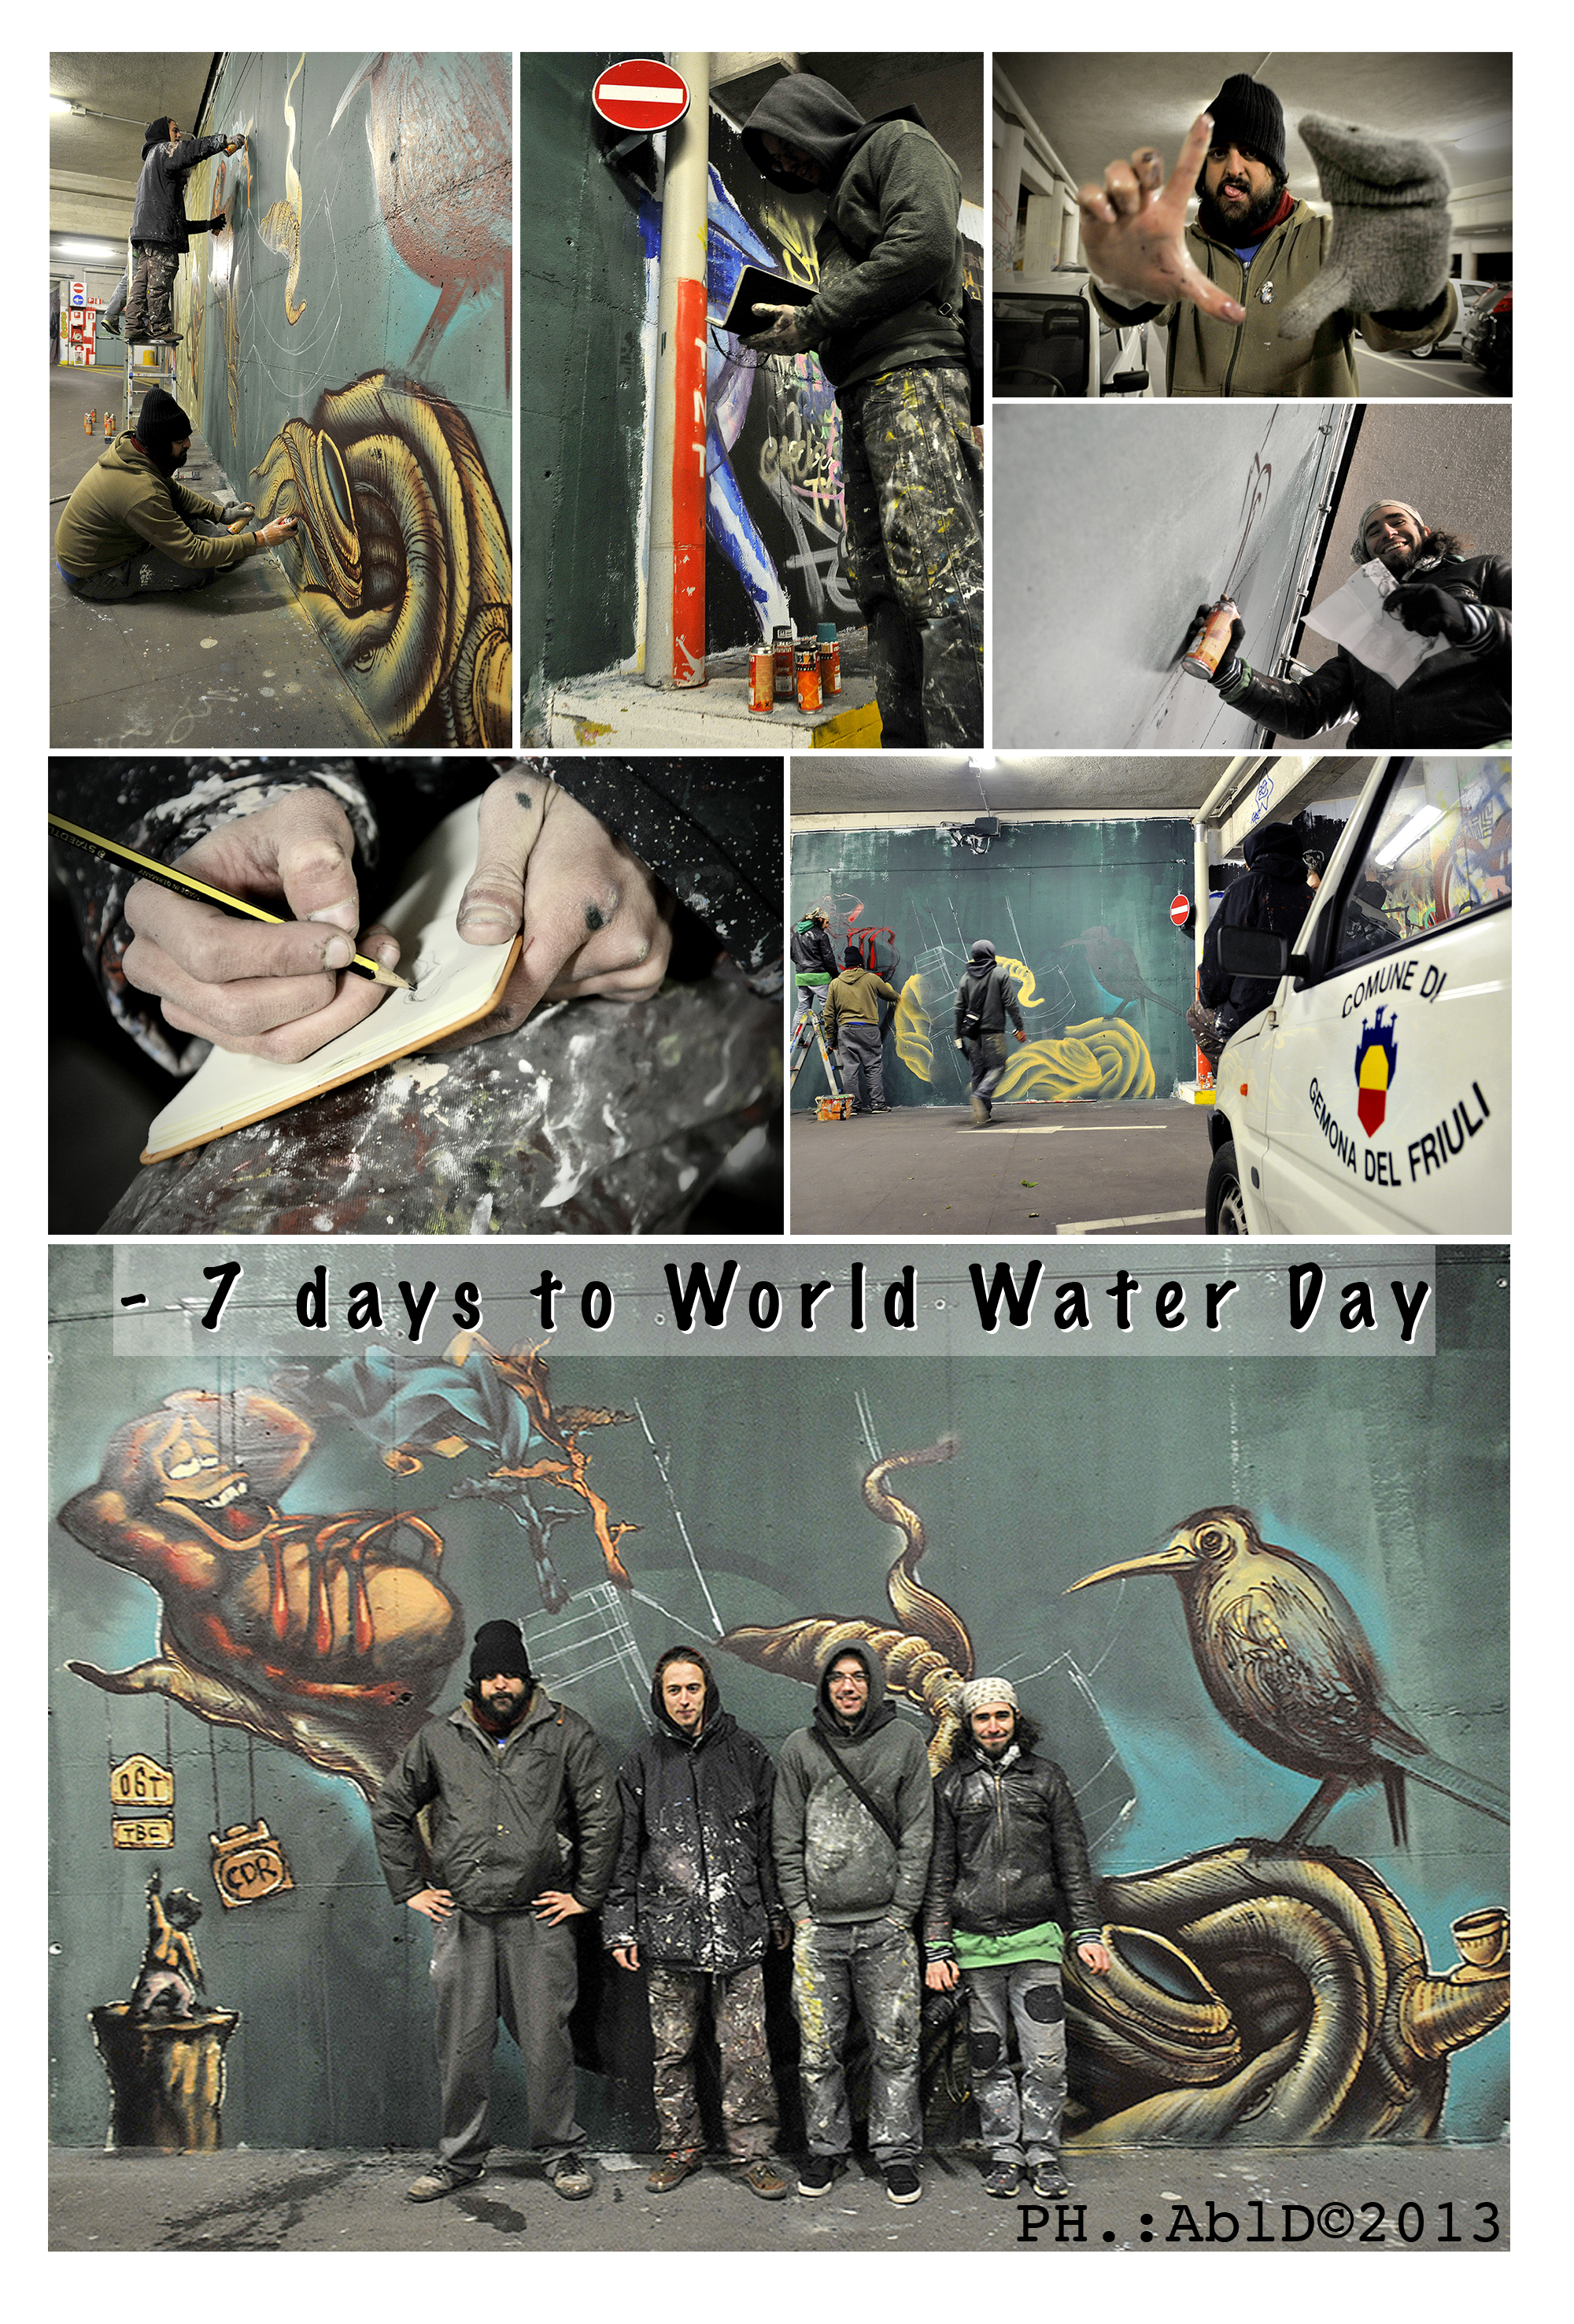 World Water Day -7 days